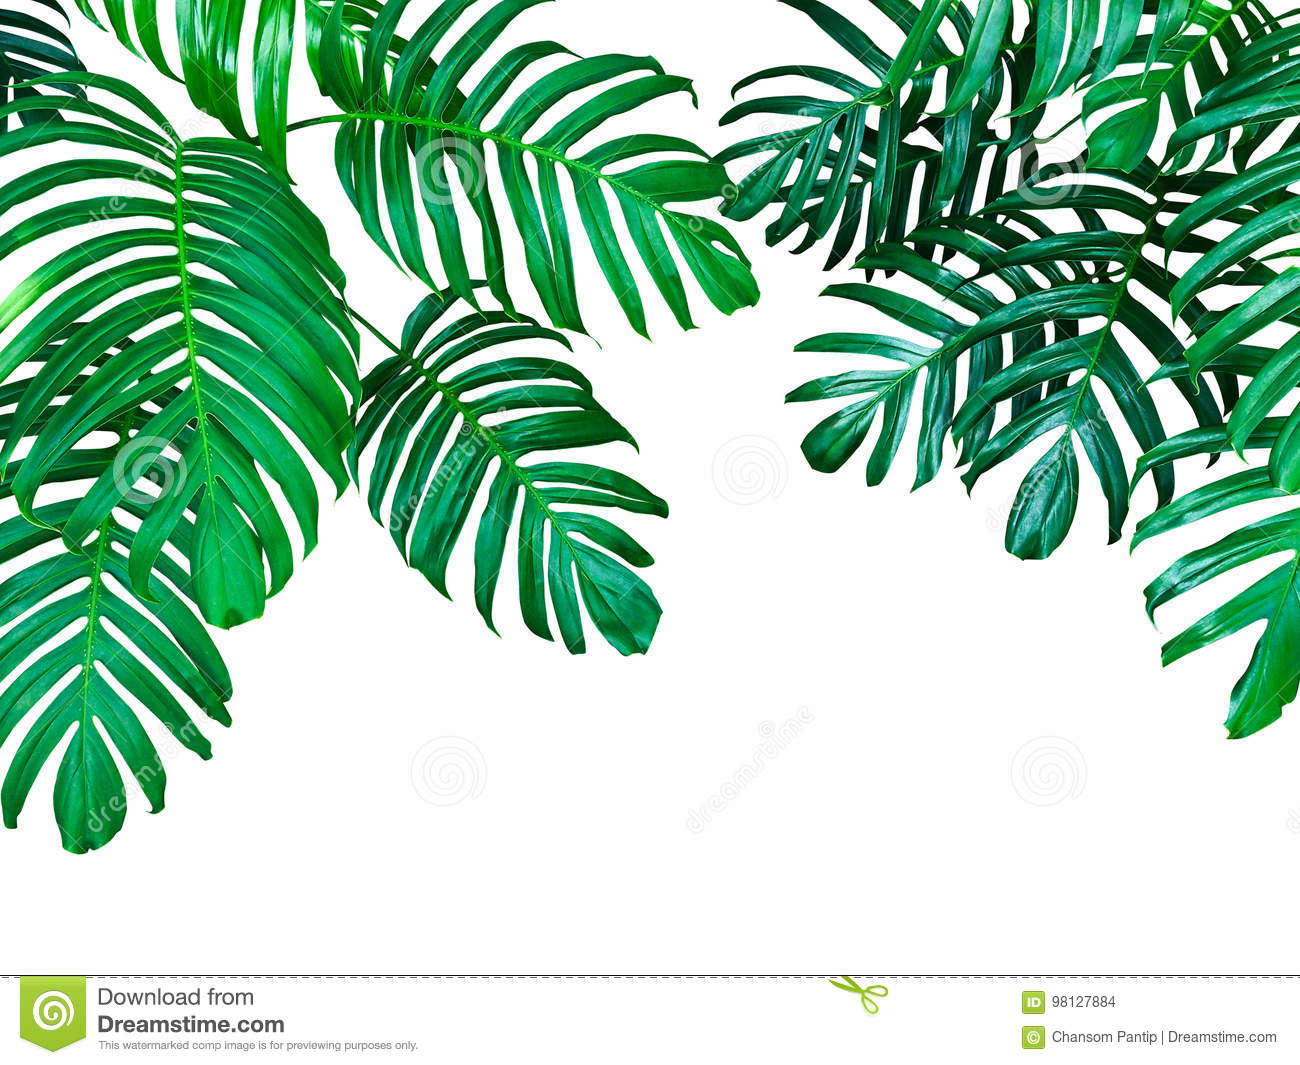 Green leaves of Monstera philodendron the tropical forest plant, evergreen vine isolated on white background, clipping path